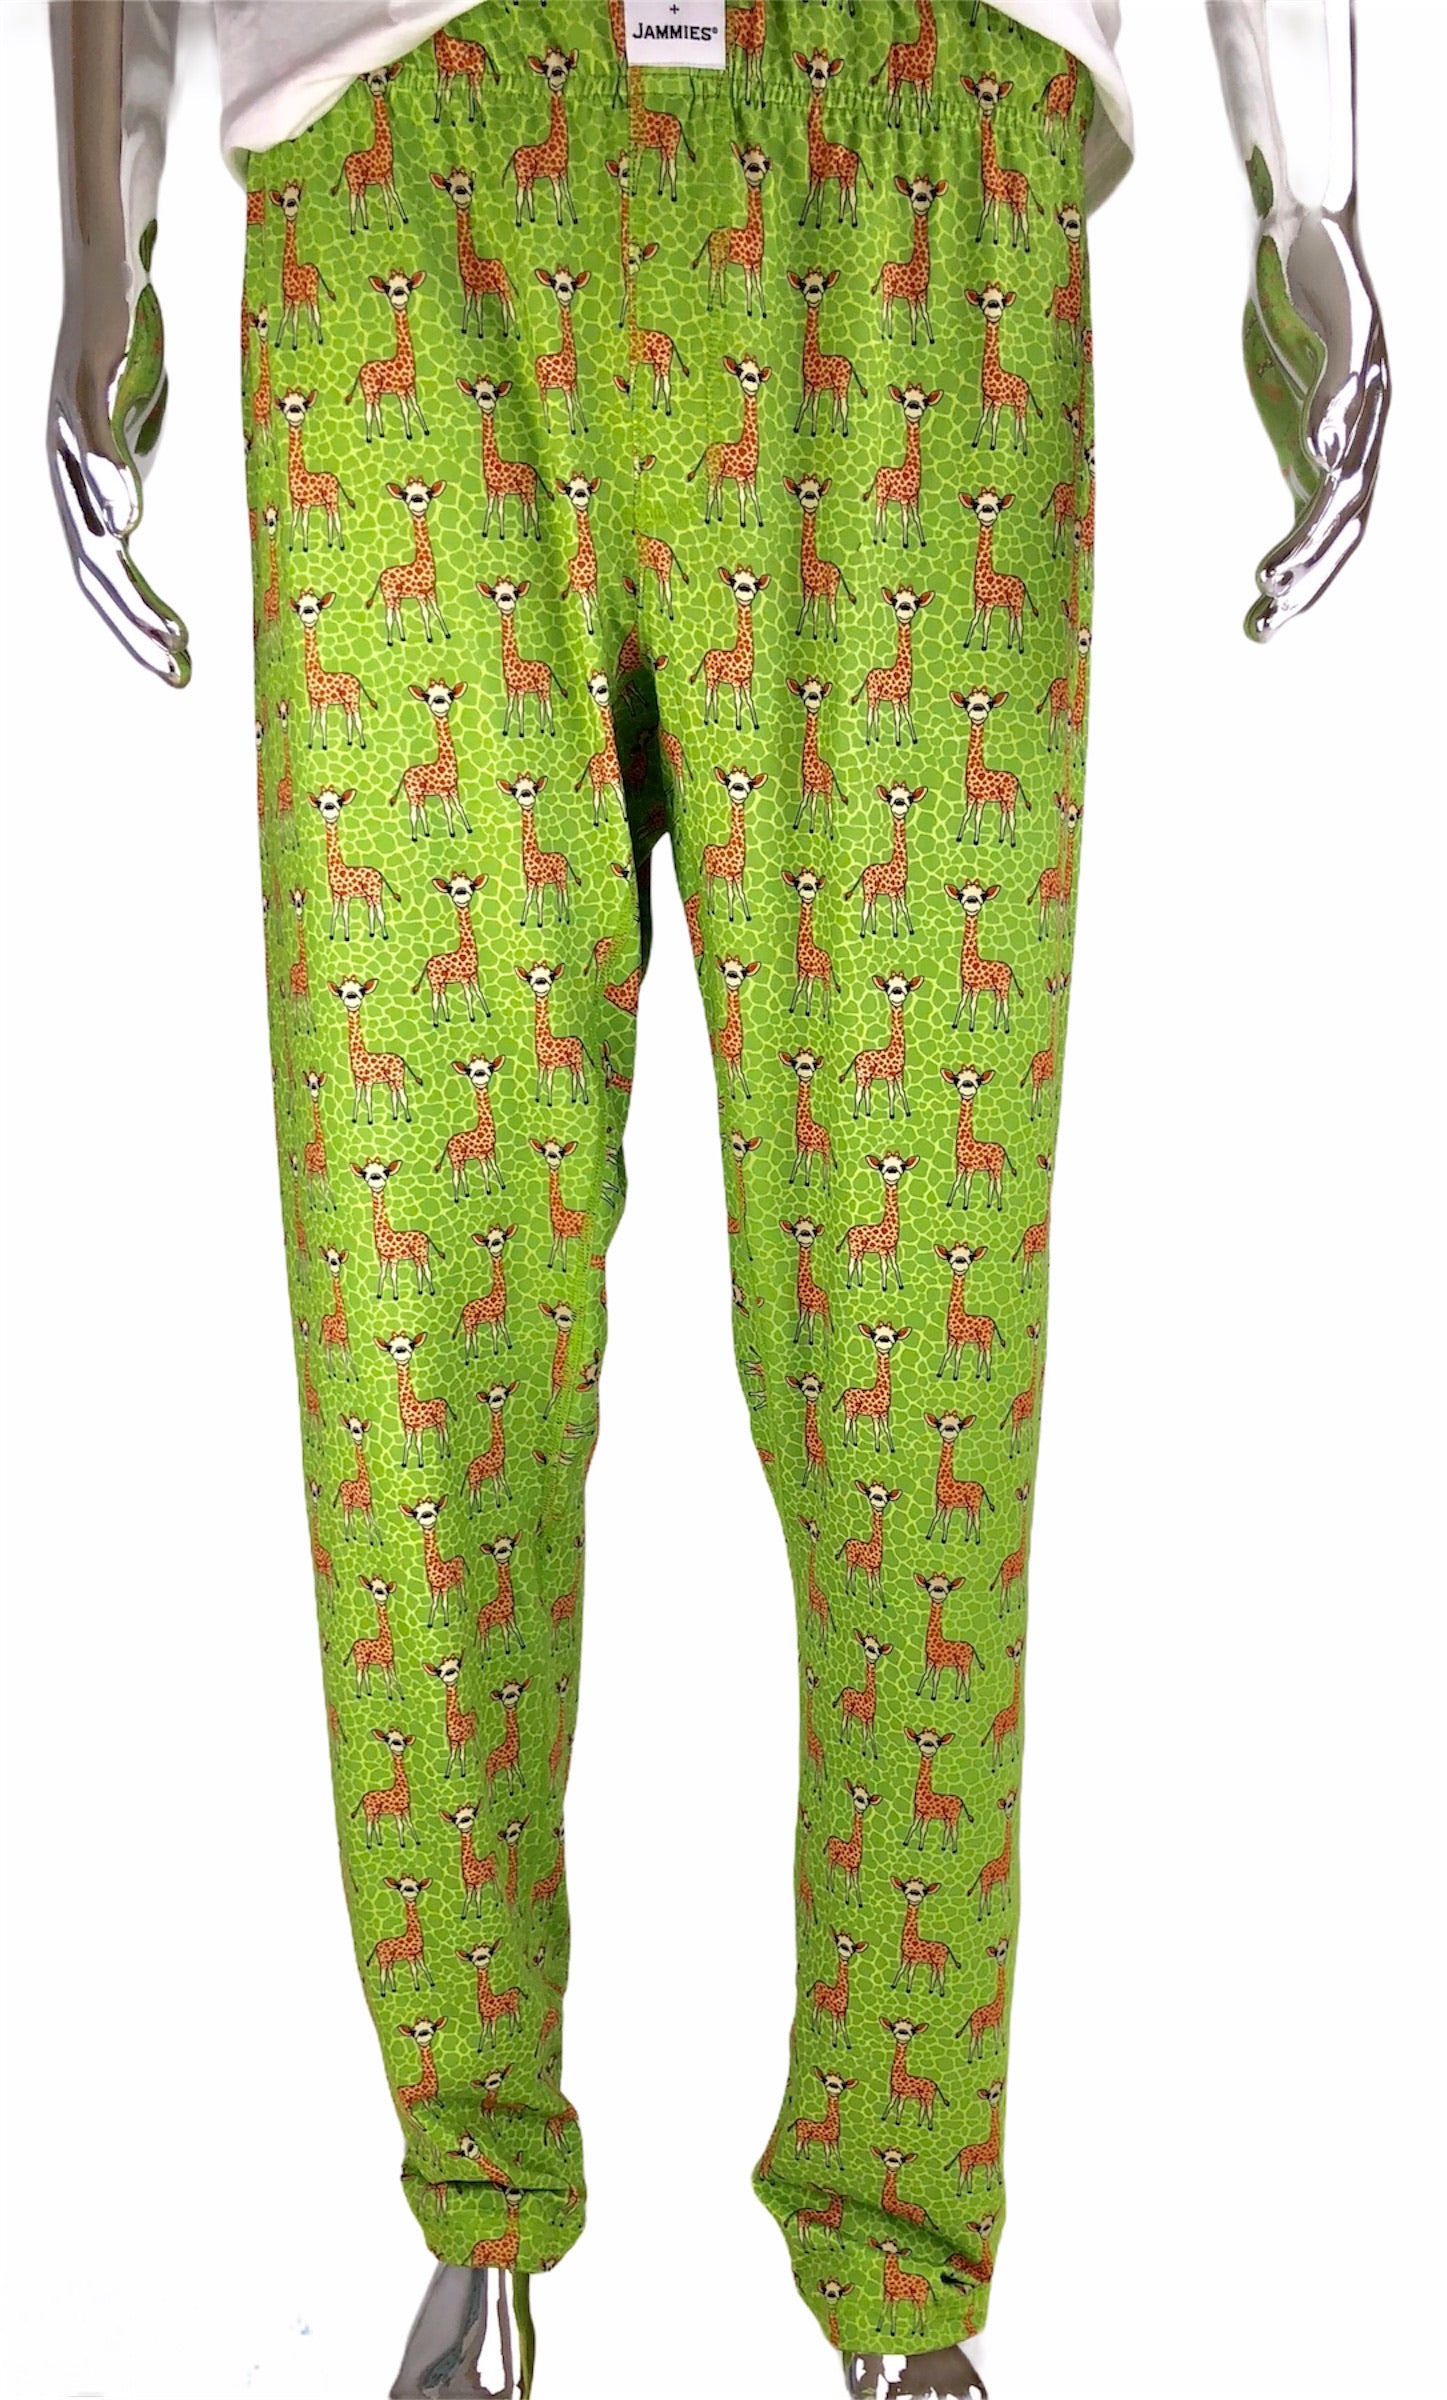 Giraffe (Adult Unisex Pant Lightweight Fabric)